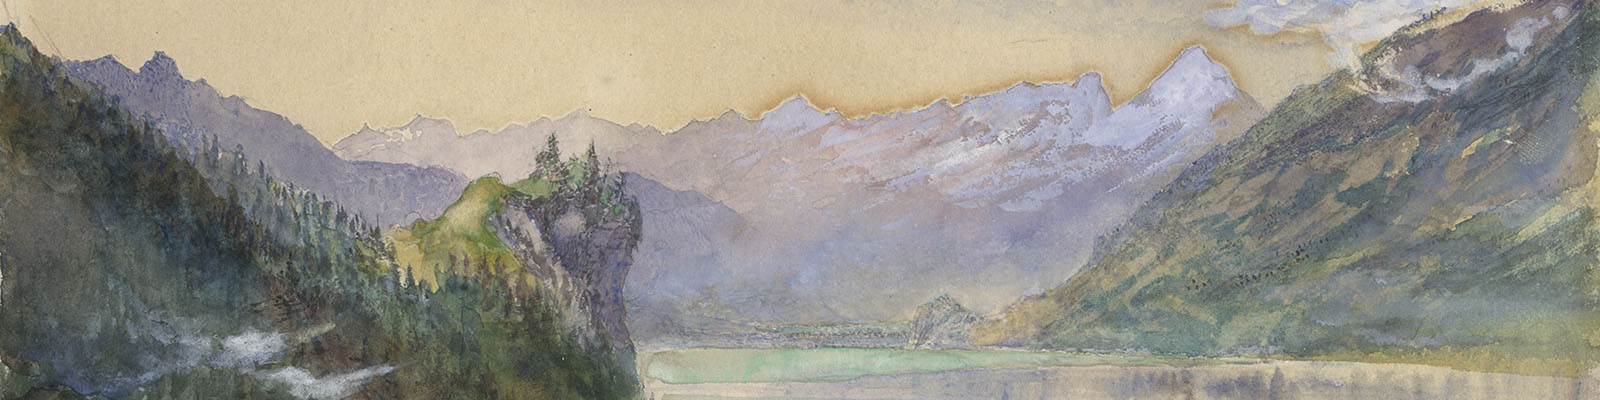 John Ruskin: Lake of Brienz